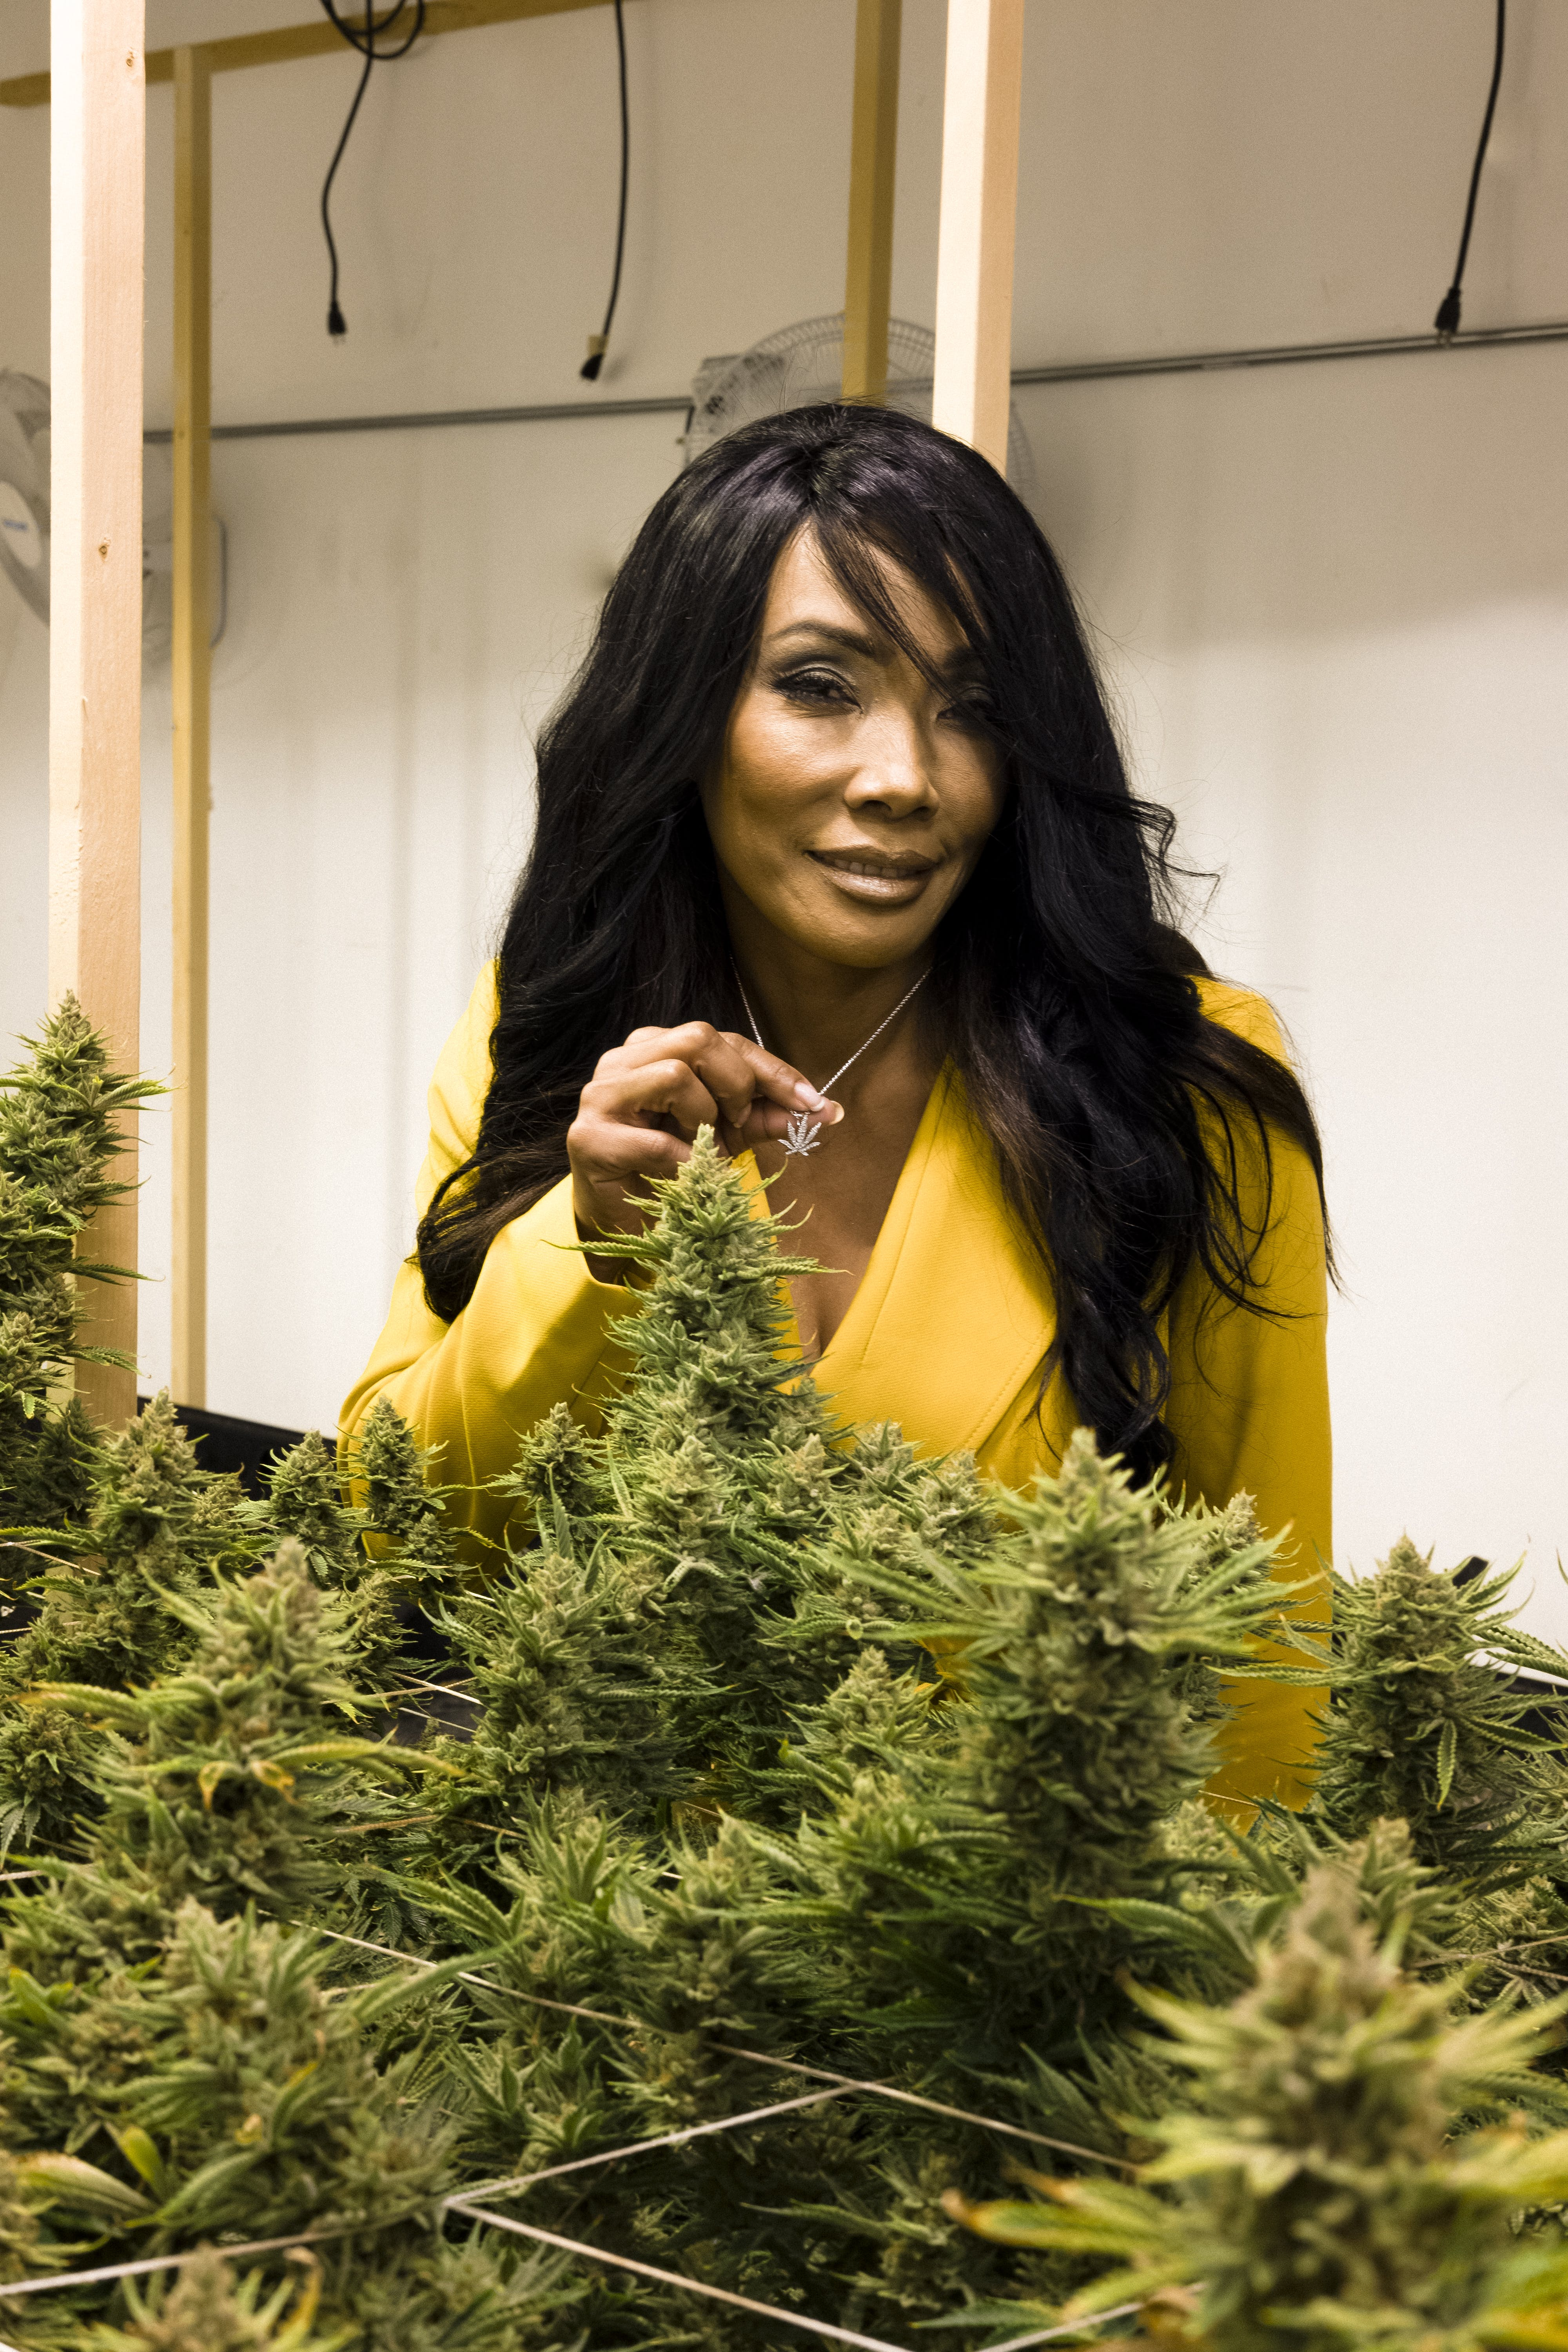 bonita money for herb final 0704 How to microdose weed and treat anxiety